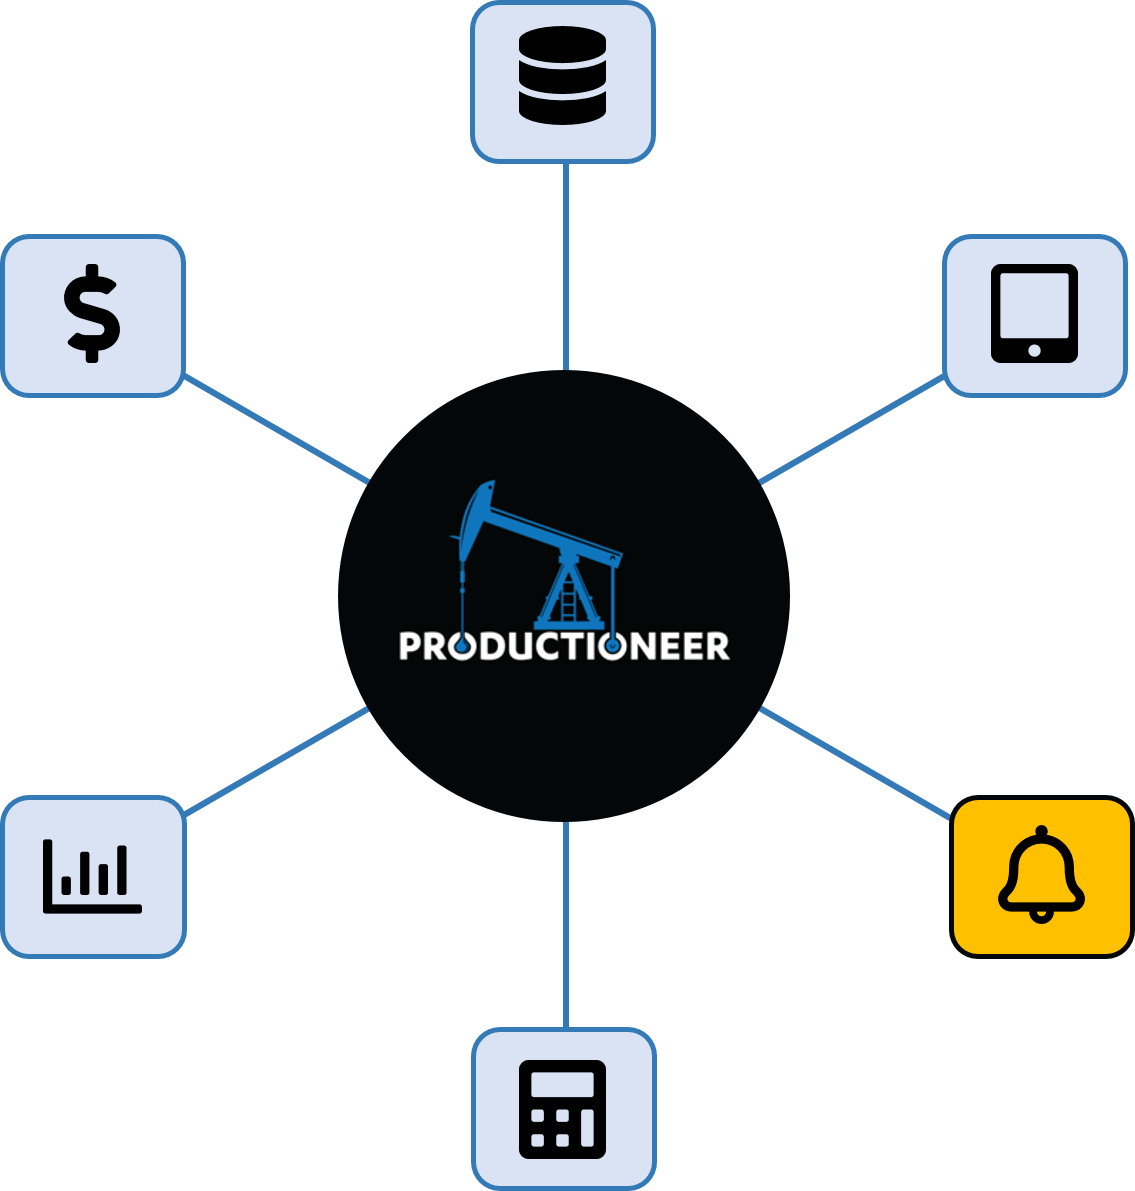 Productioneer concierge level service feature wheel